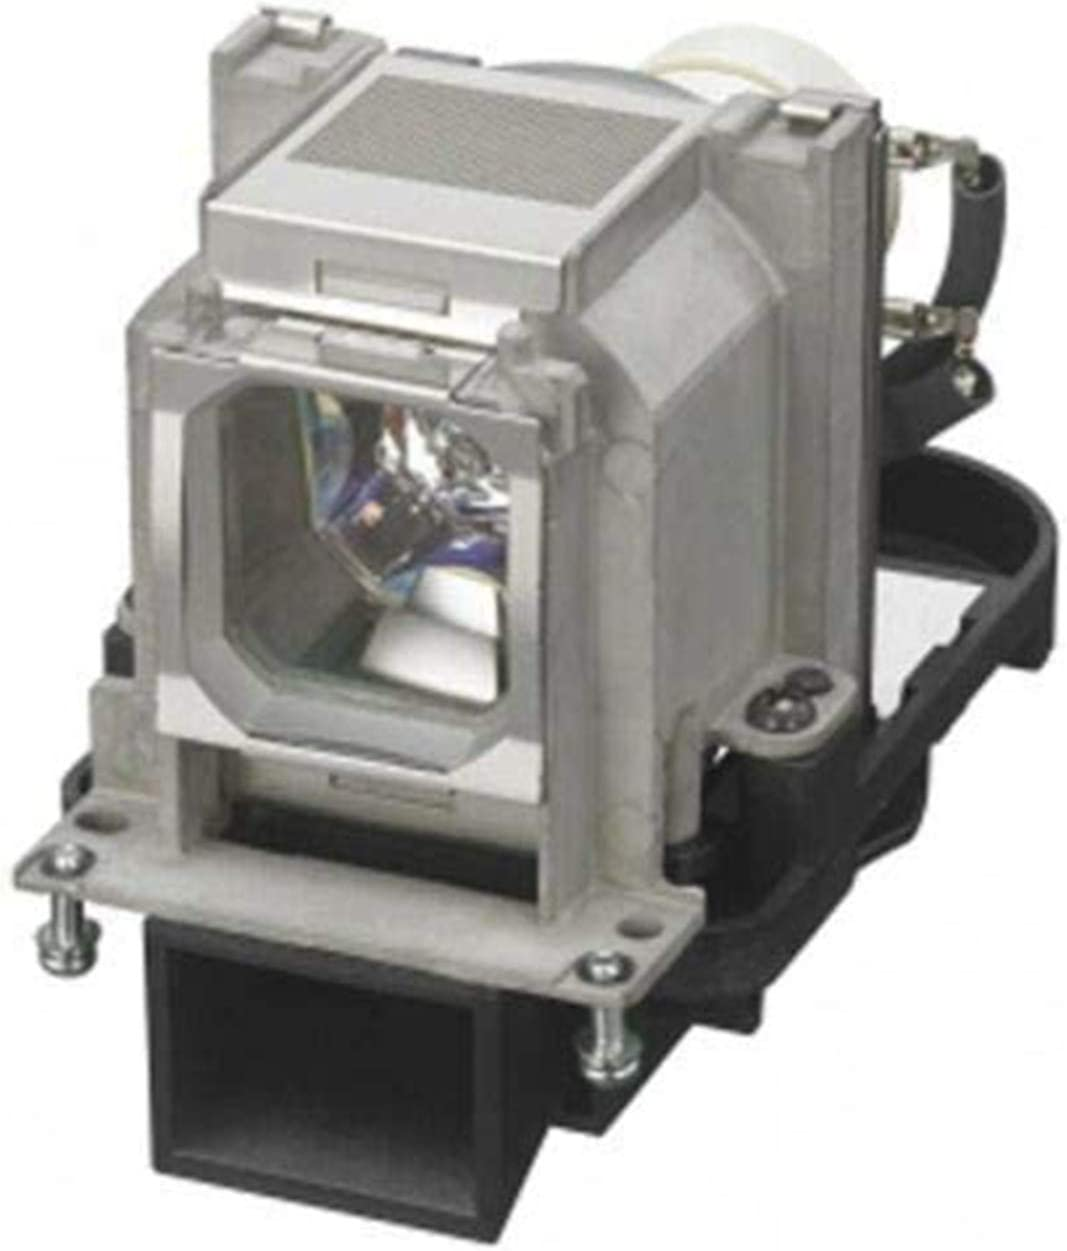 Sklamp LMP-E221 Compatible Lamp with Housing for Sony VPL-EW315 VPL-EW345 VPL-EW348 VPL-EW435 VPL-EW575 Projectors